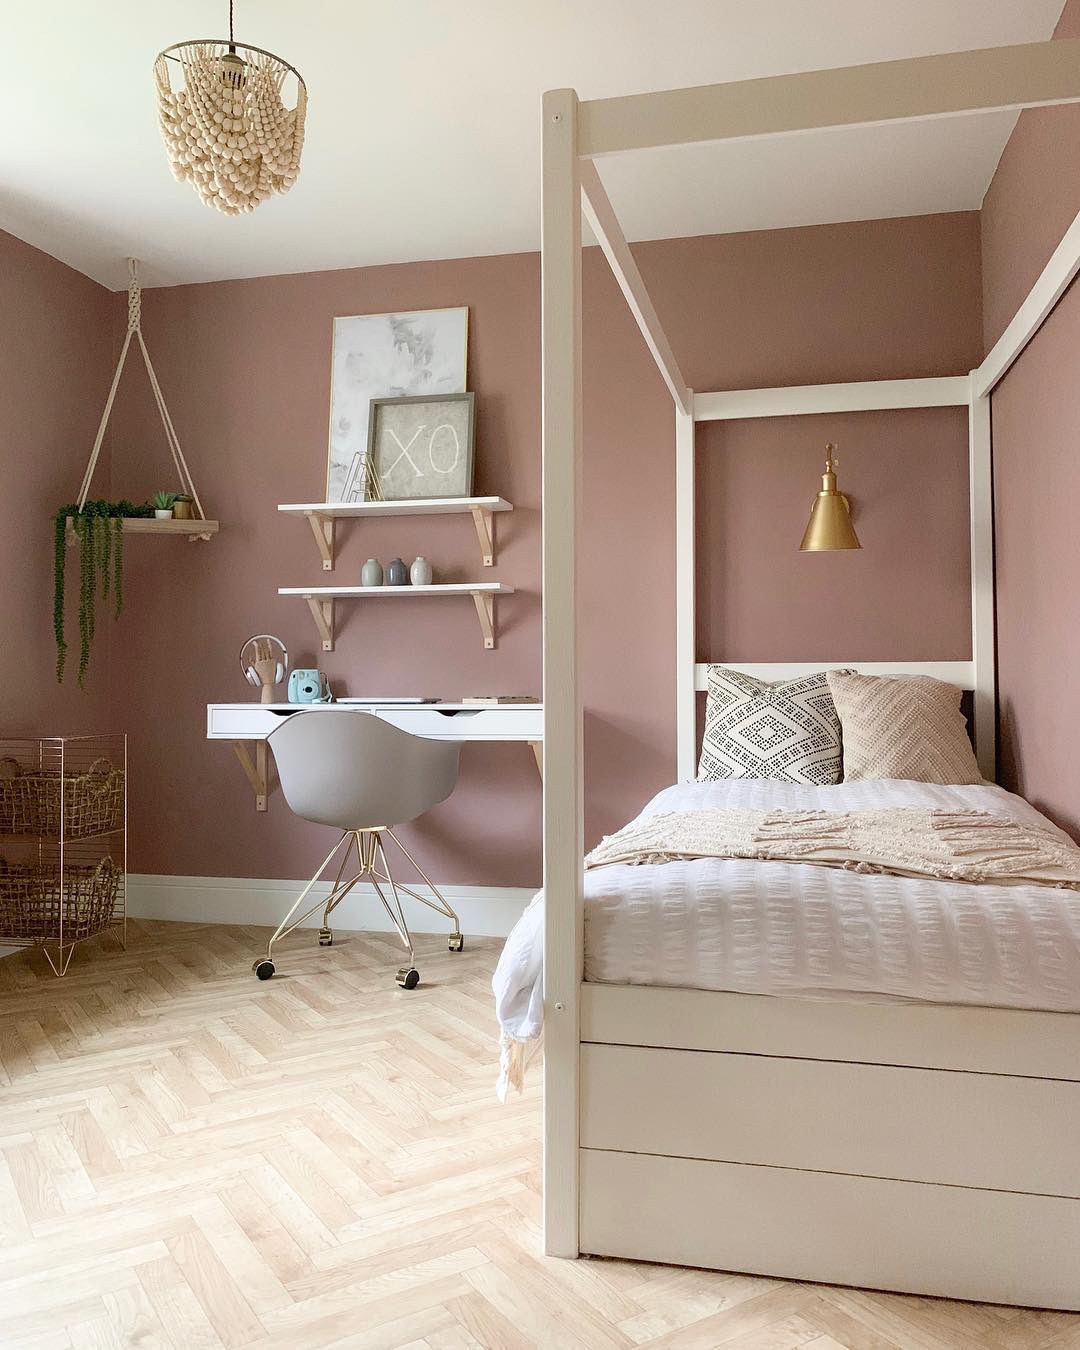 Sulking Room Pink Scandi Style In 2020 Schlafzimmerfarben Schlafzimmer Design Zimmer Farben